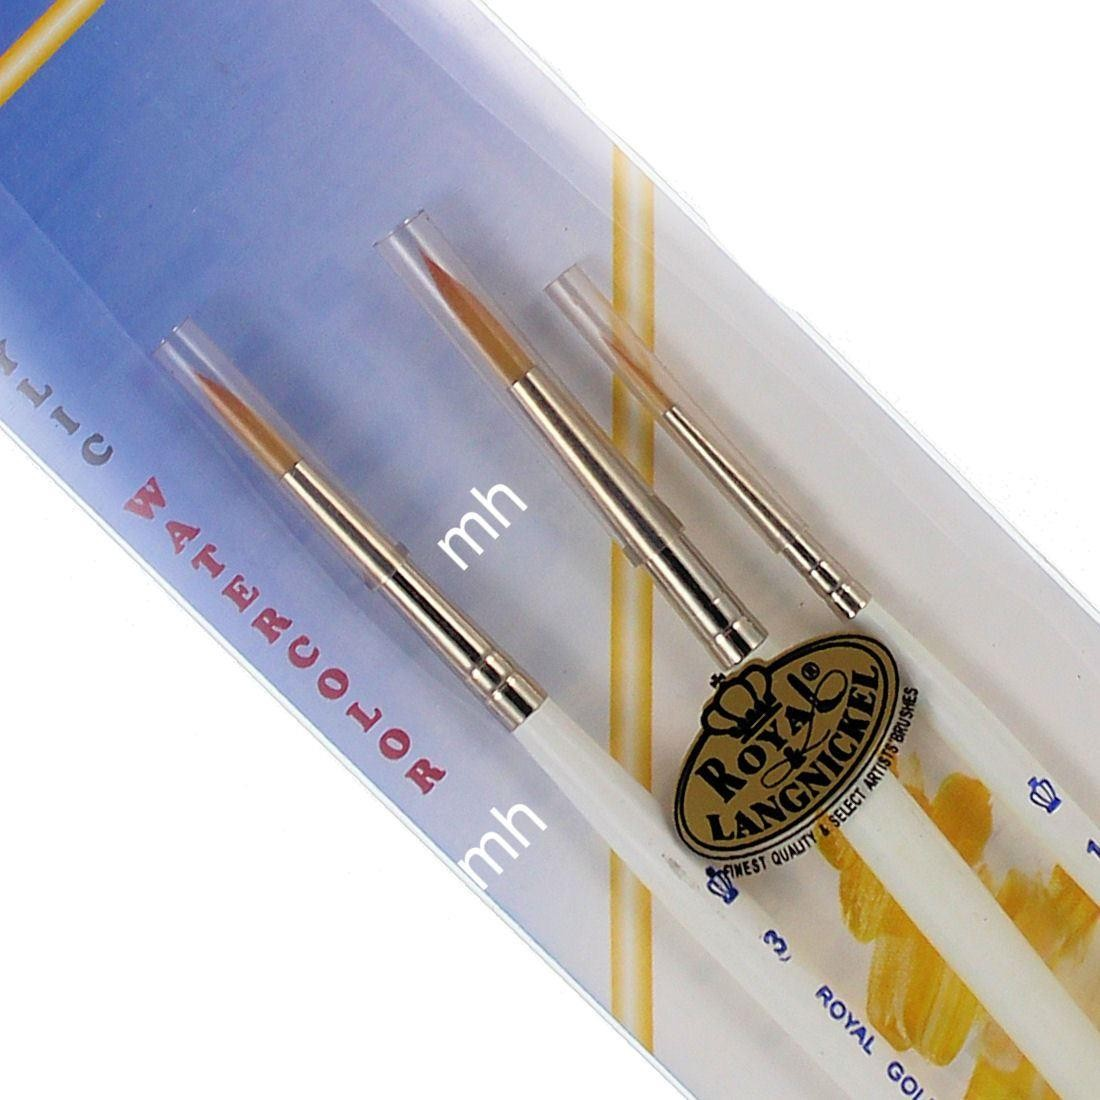 Royal & Langnickel 3 Golden Taklon Acrylic Watercolour Brush Set RG-105